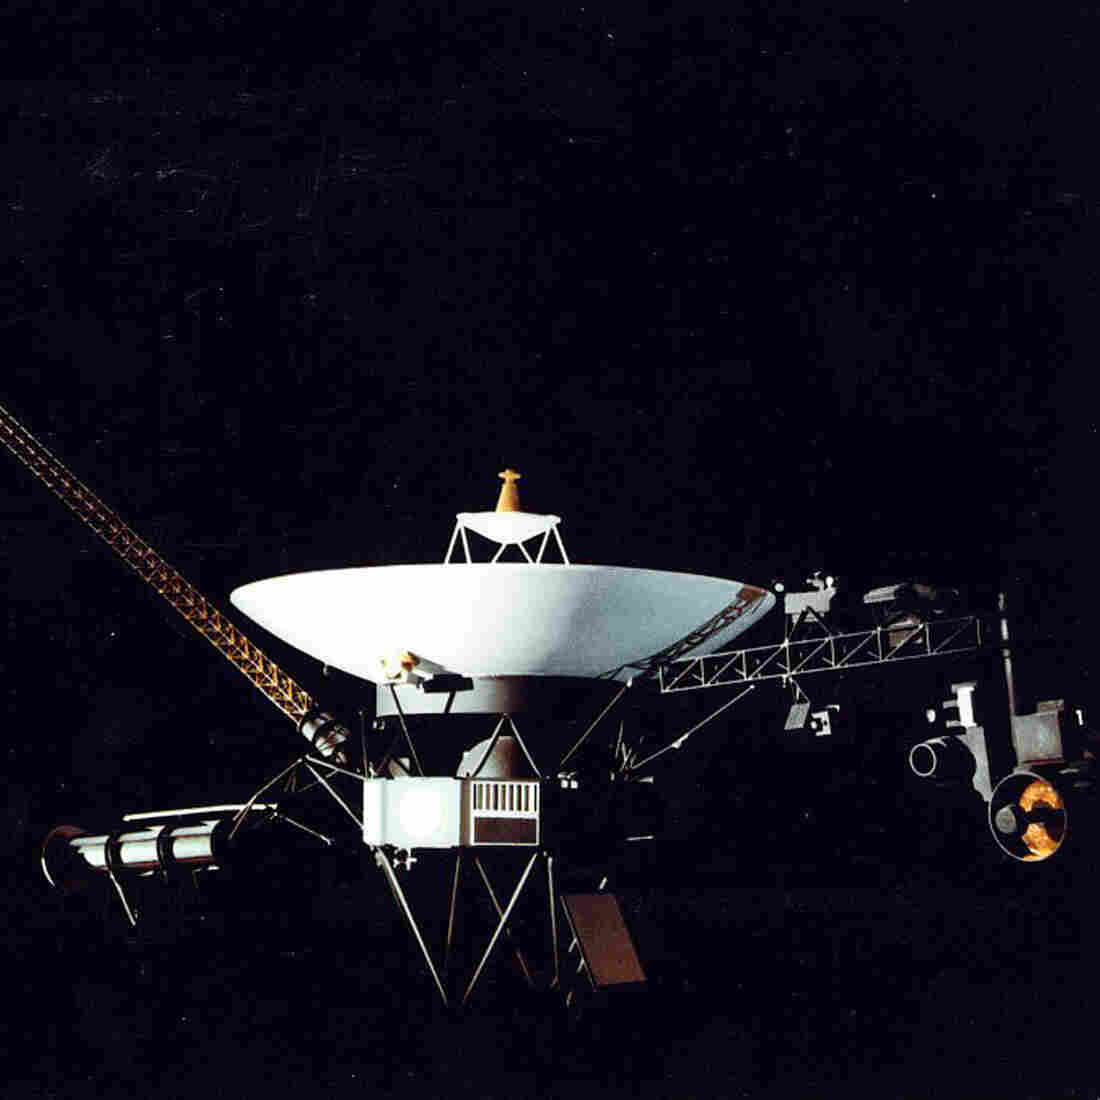 See Ya, Voyager: Probe Has Finally Entered Interstellar Space